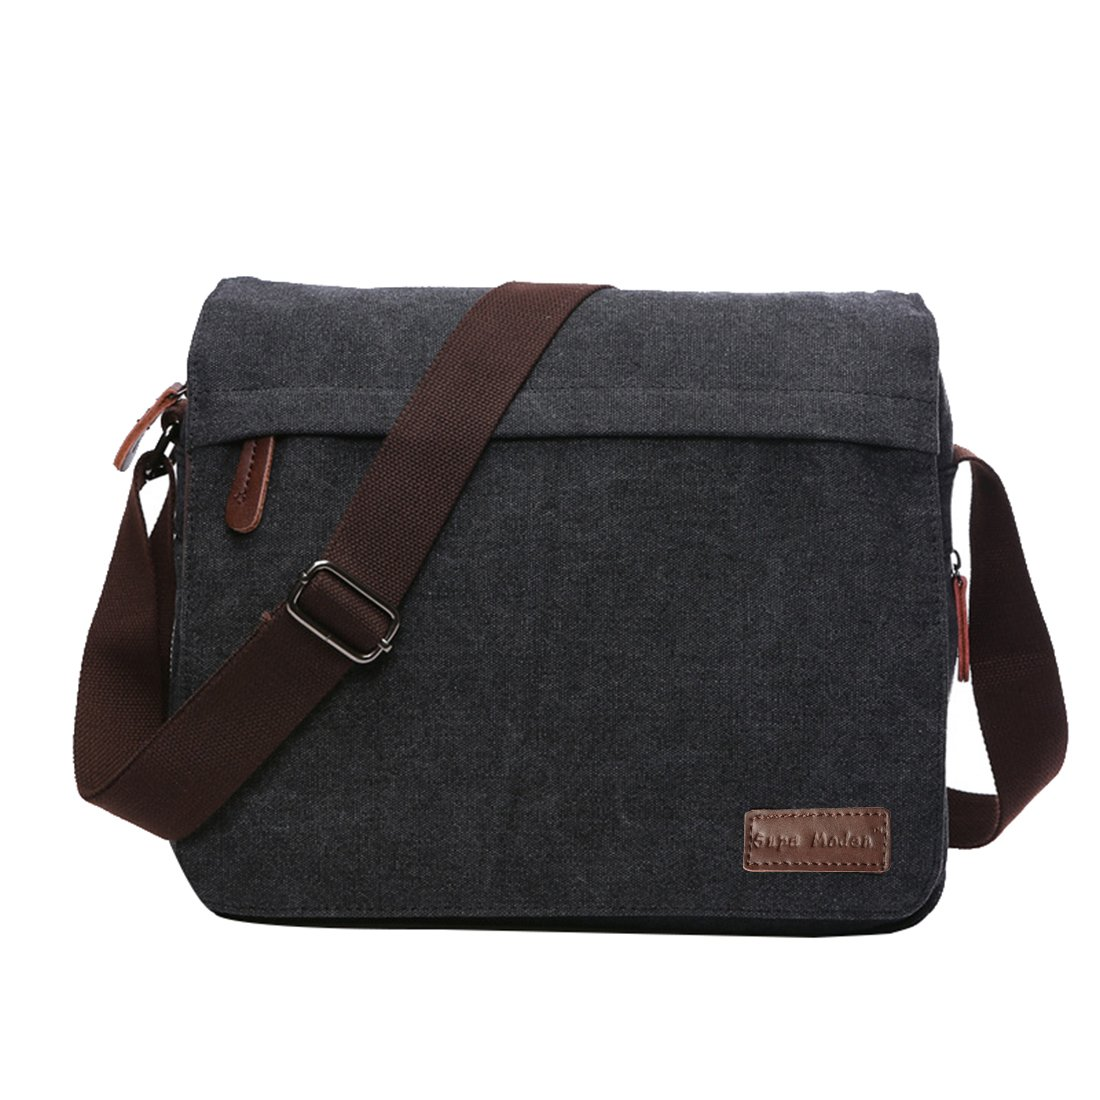 37310b21094e SUPA MODERN® Canvas Messenger Bag Shoulder Bag Laptop Bag Satchel Bag  Bookbag School Bag Working Bag Crossbody Bag for Men and Women(14 Inch  Laptop Bag)